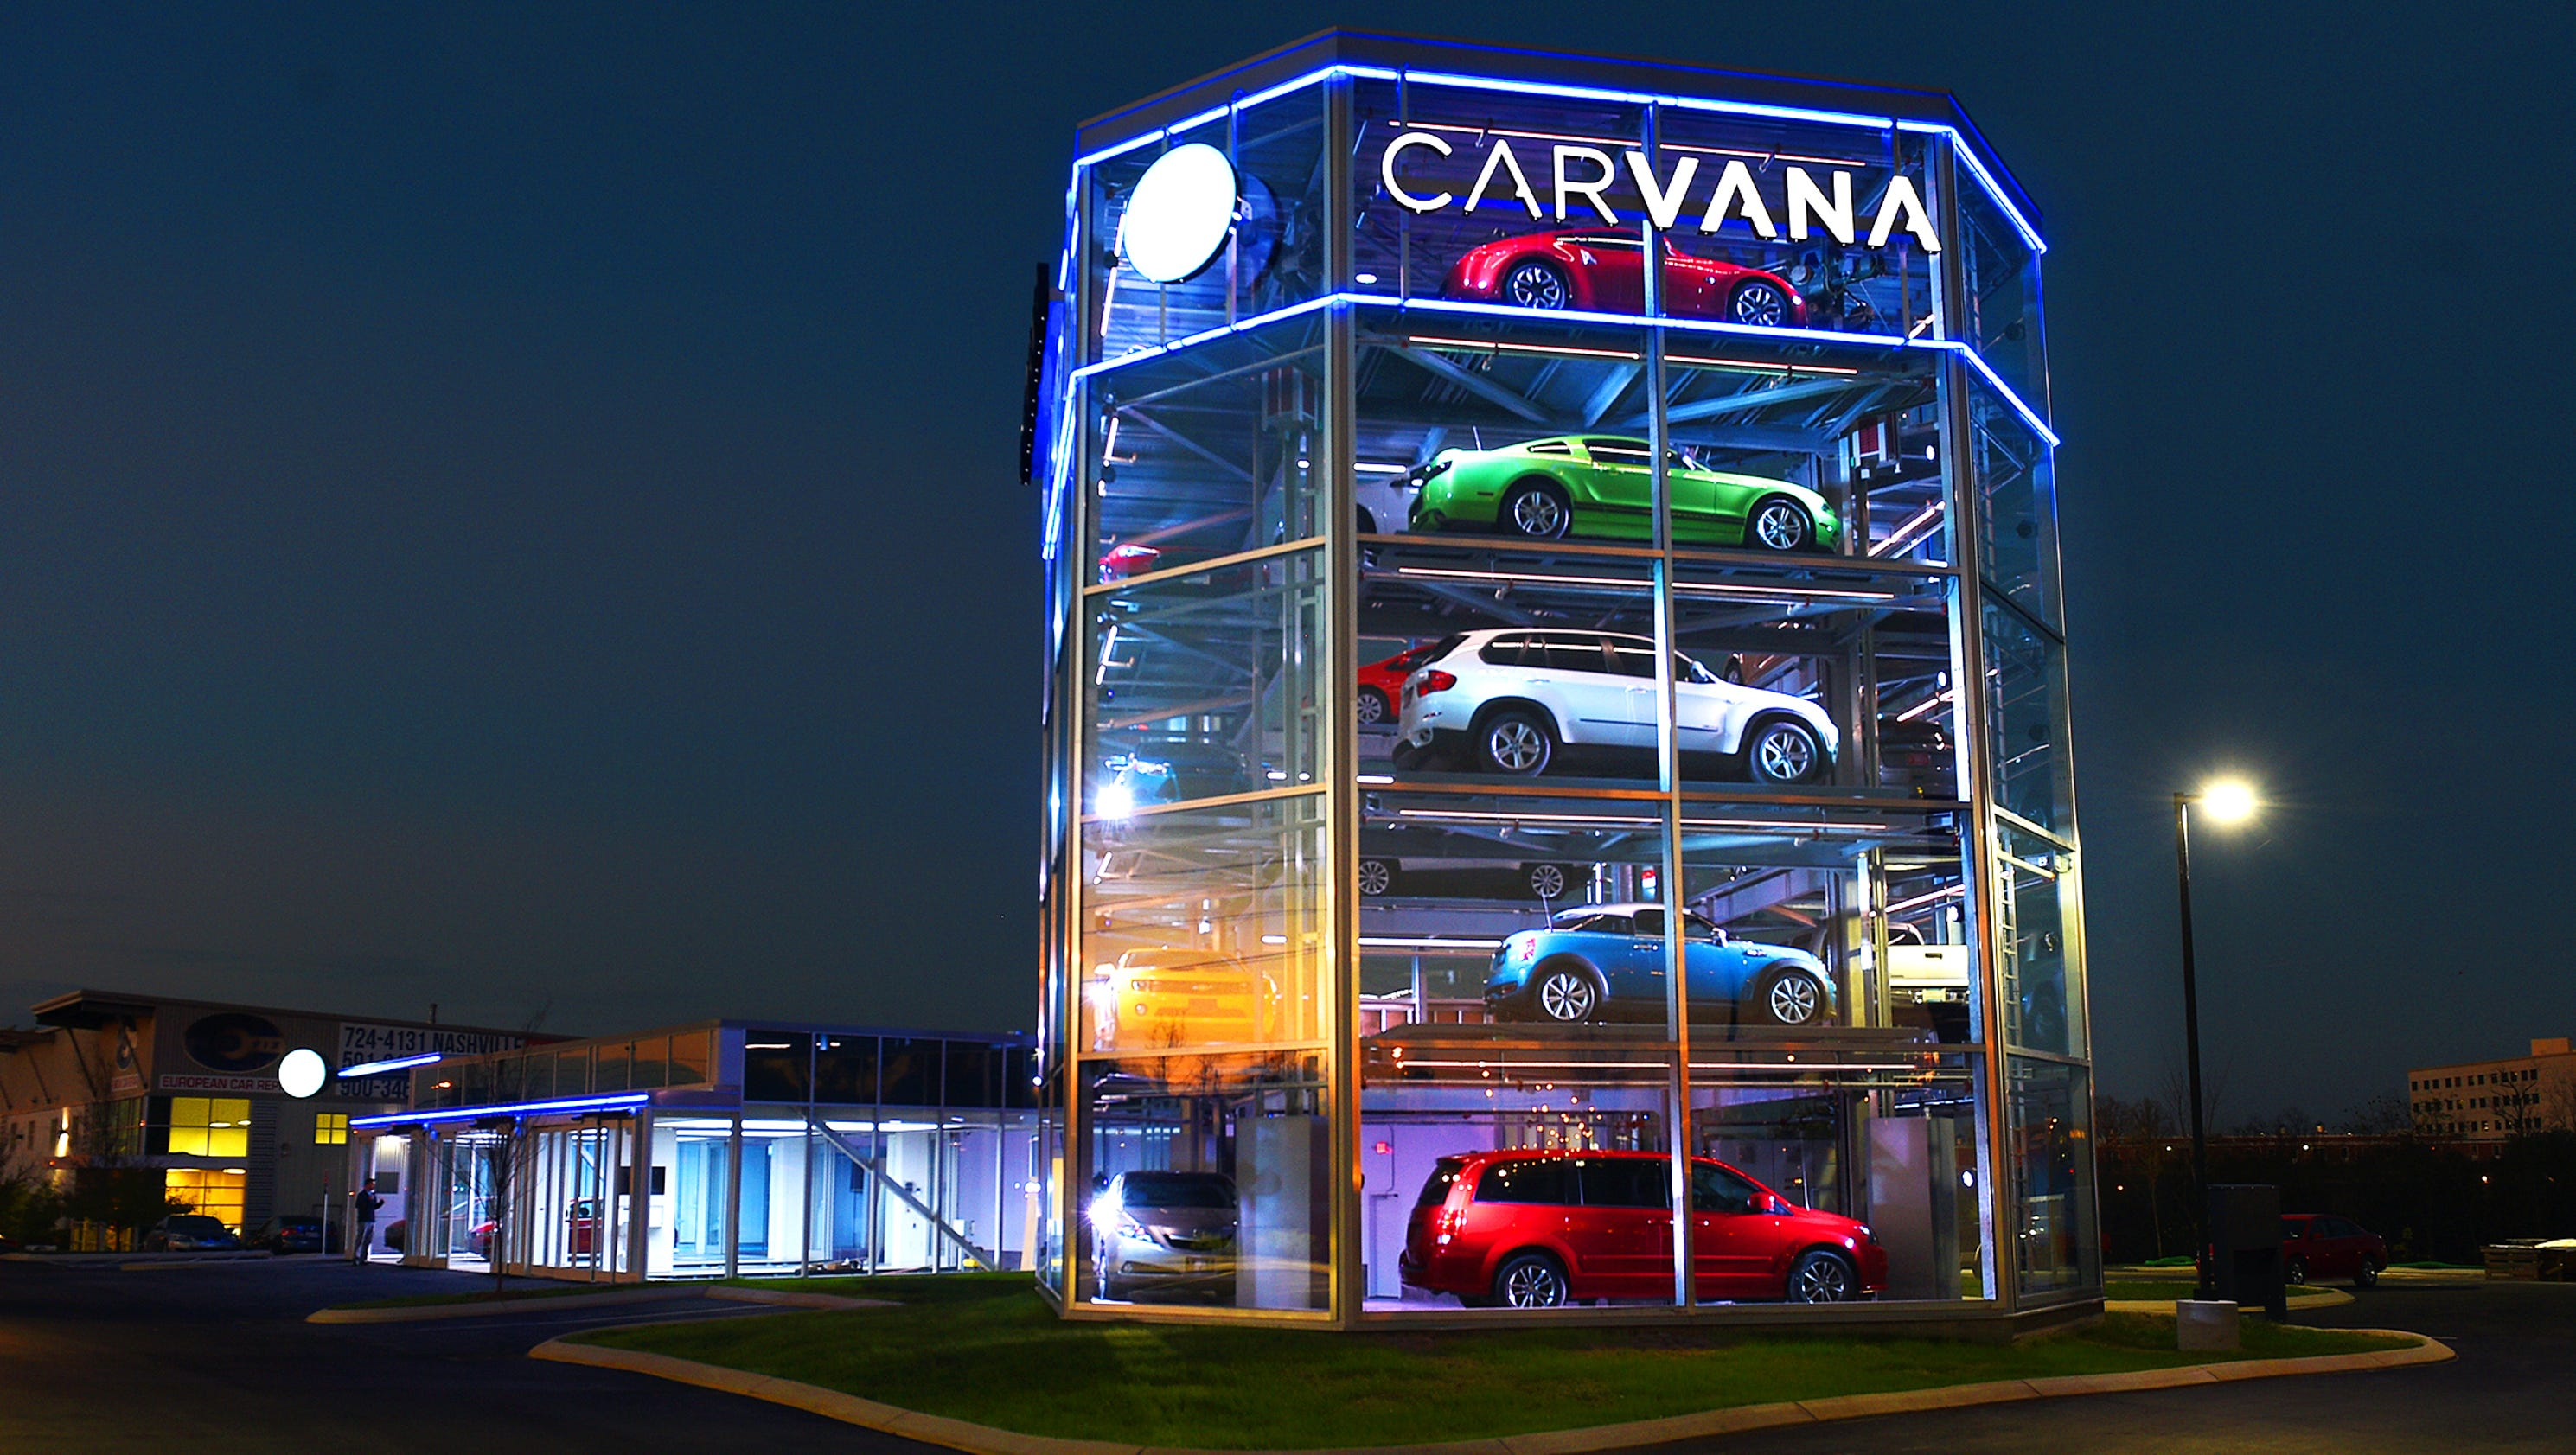 Nashville Used Cars >> Carvana vending machine spins used car industry on new path